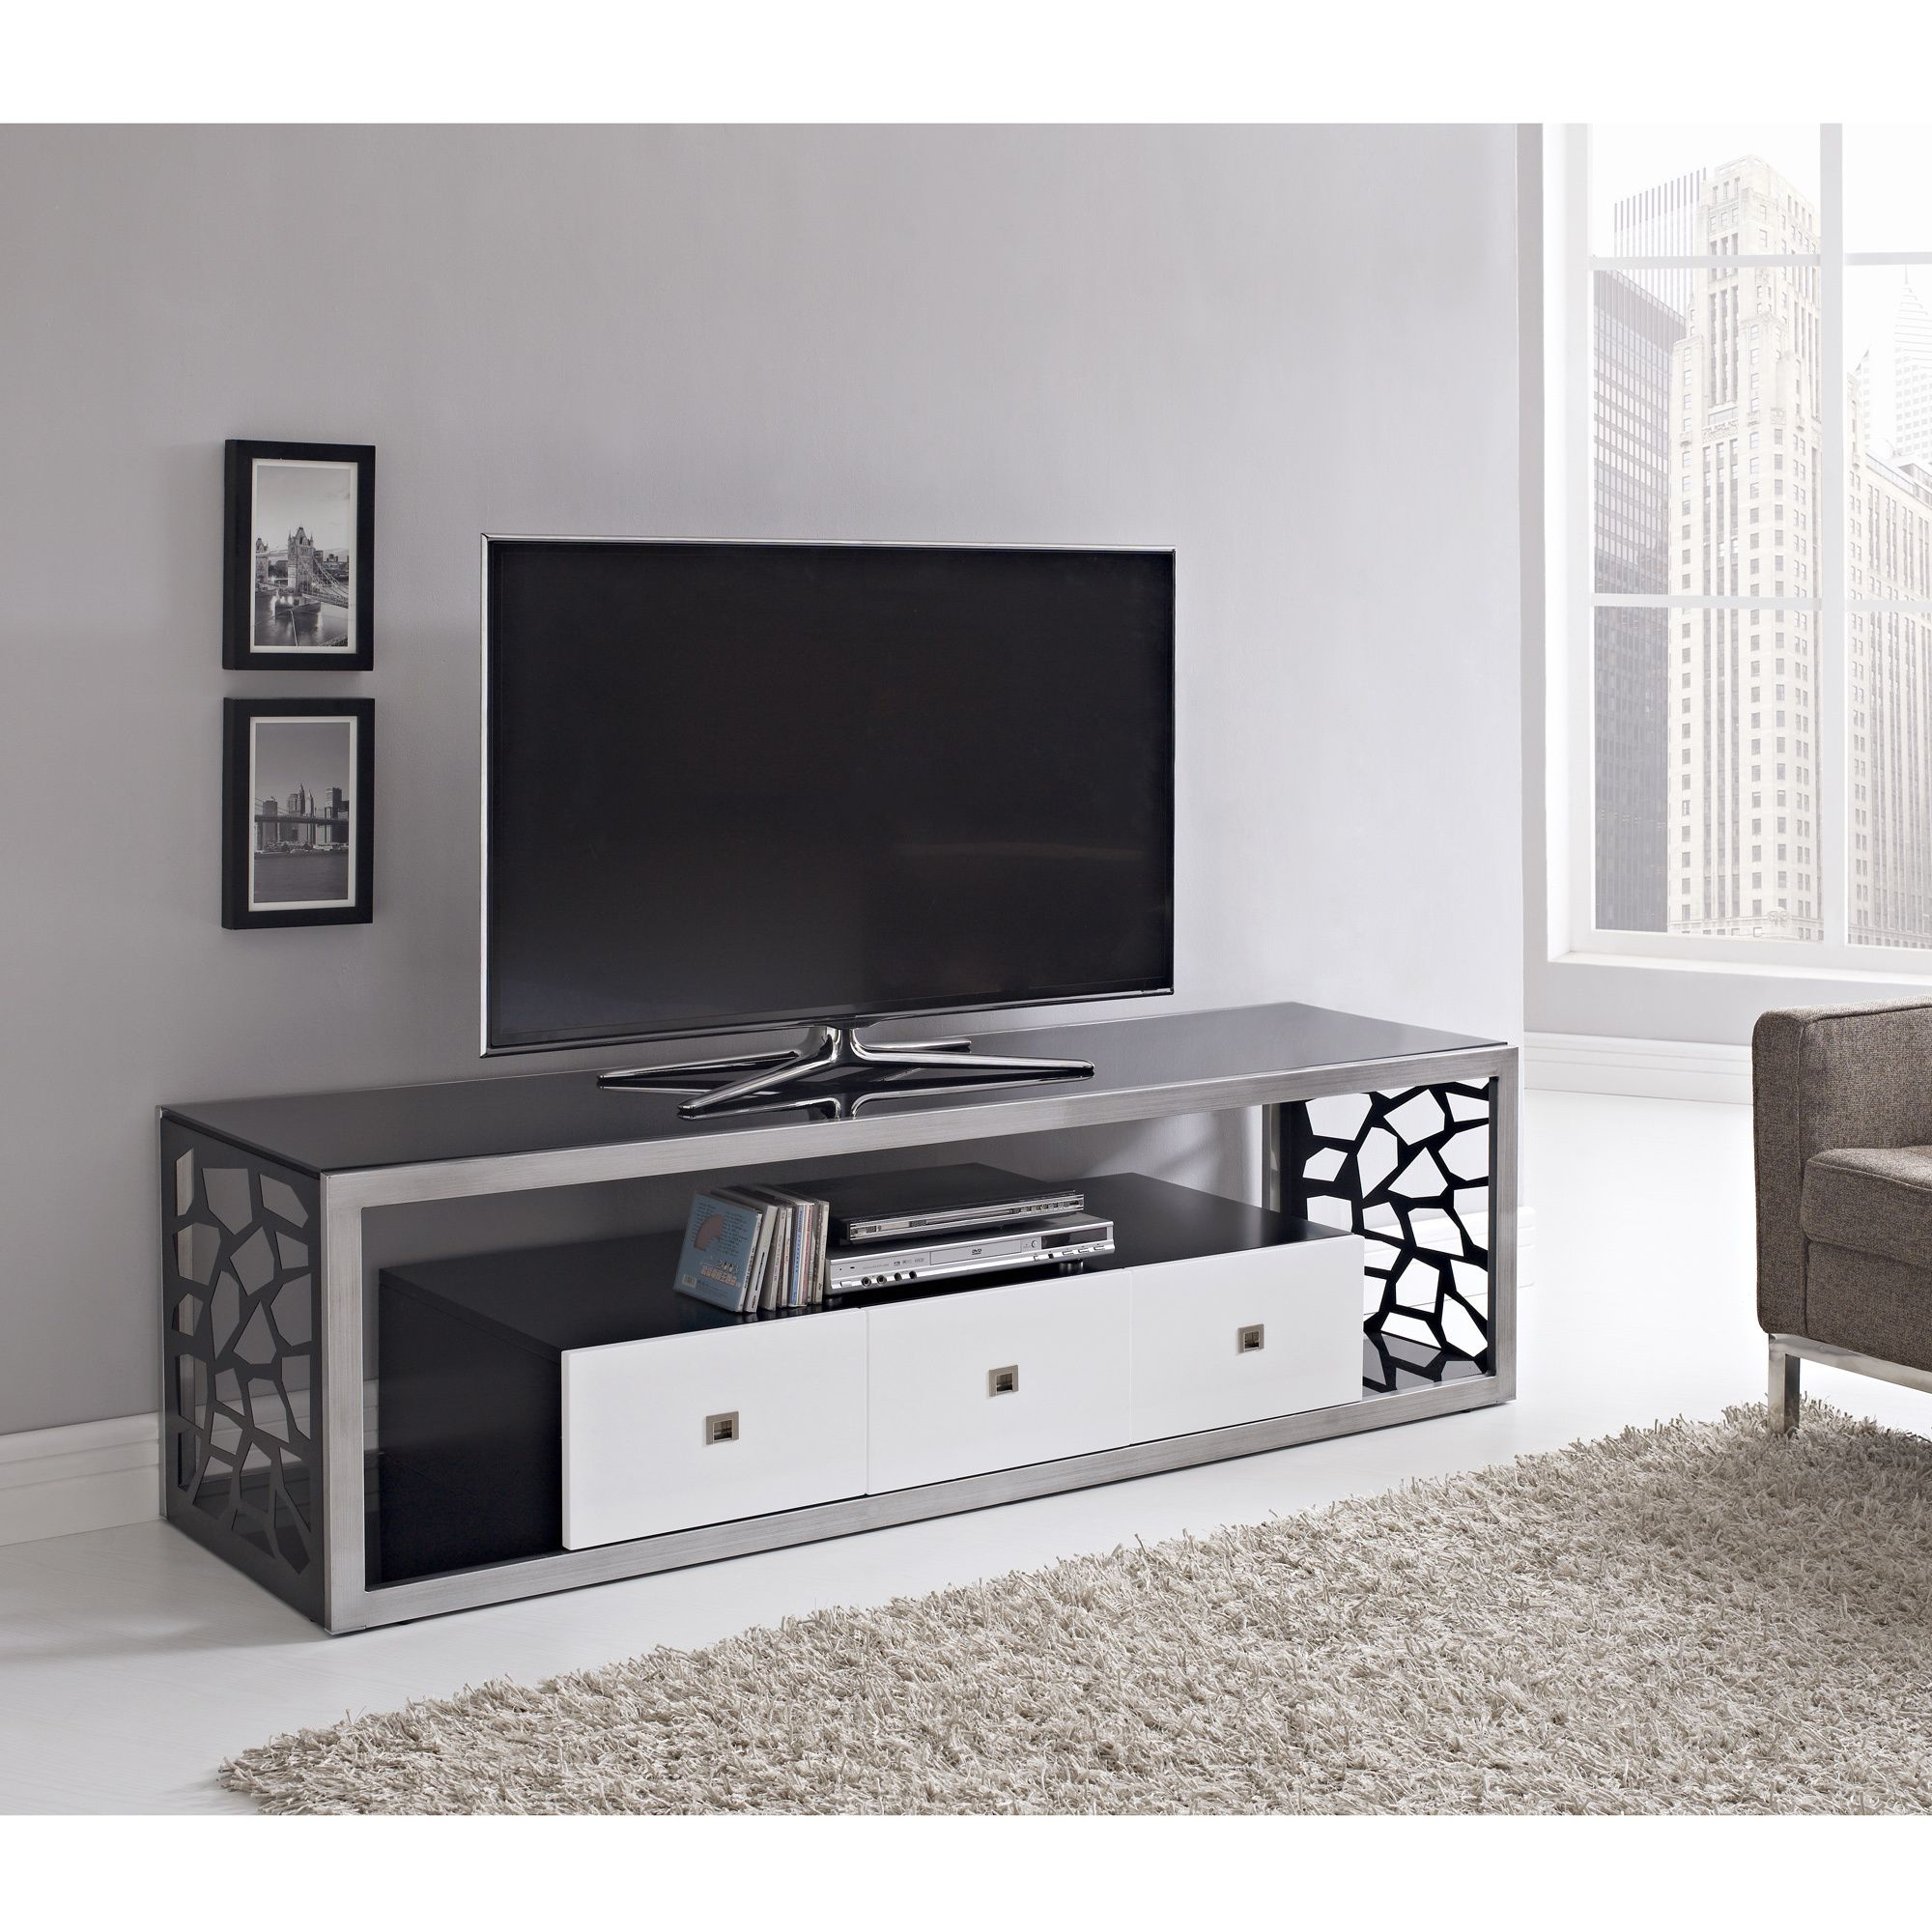 black glass modern inch tv stand  mosaic designs safety glass  - black glass modern inch tv stand